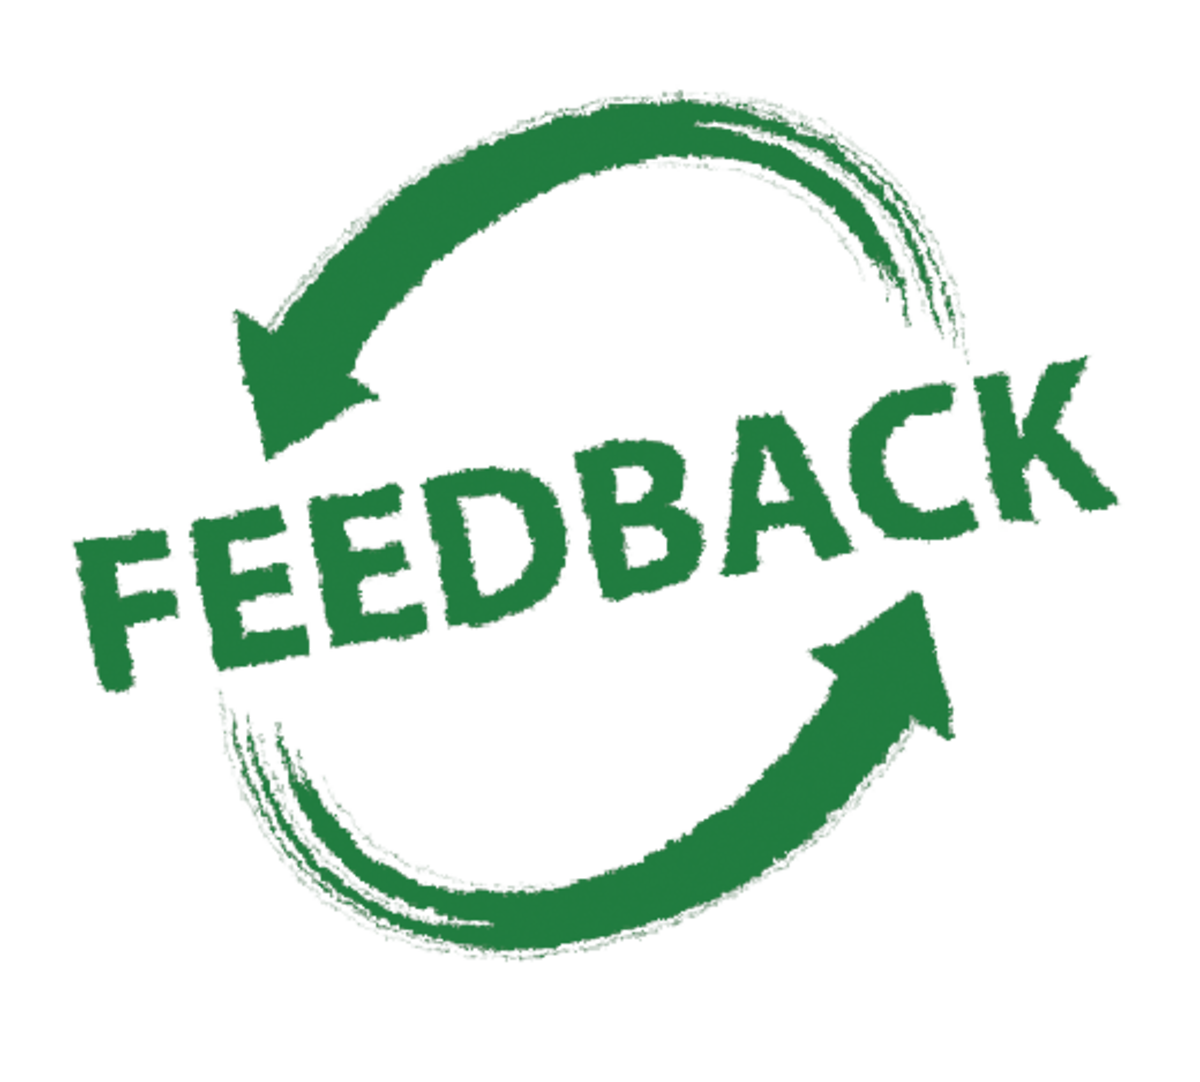 Giving and receiving feedback - A personal statement - NVQ Business and Administration